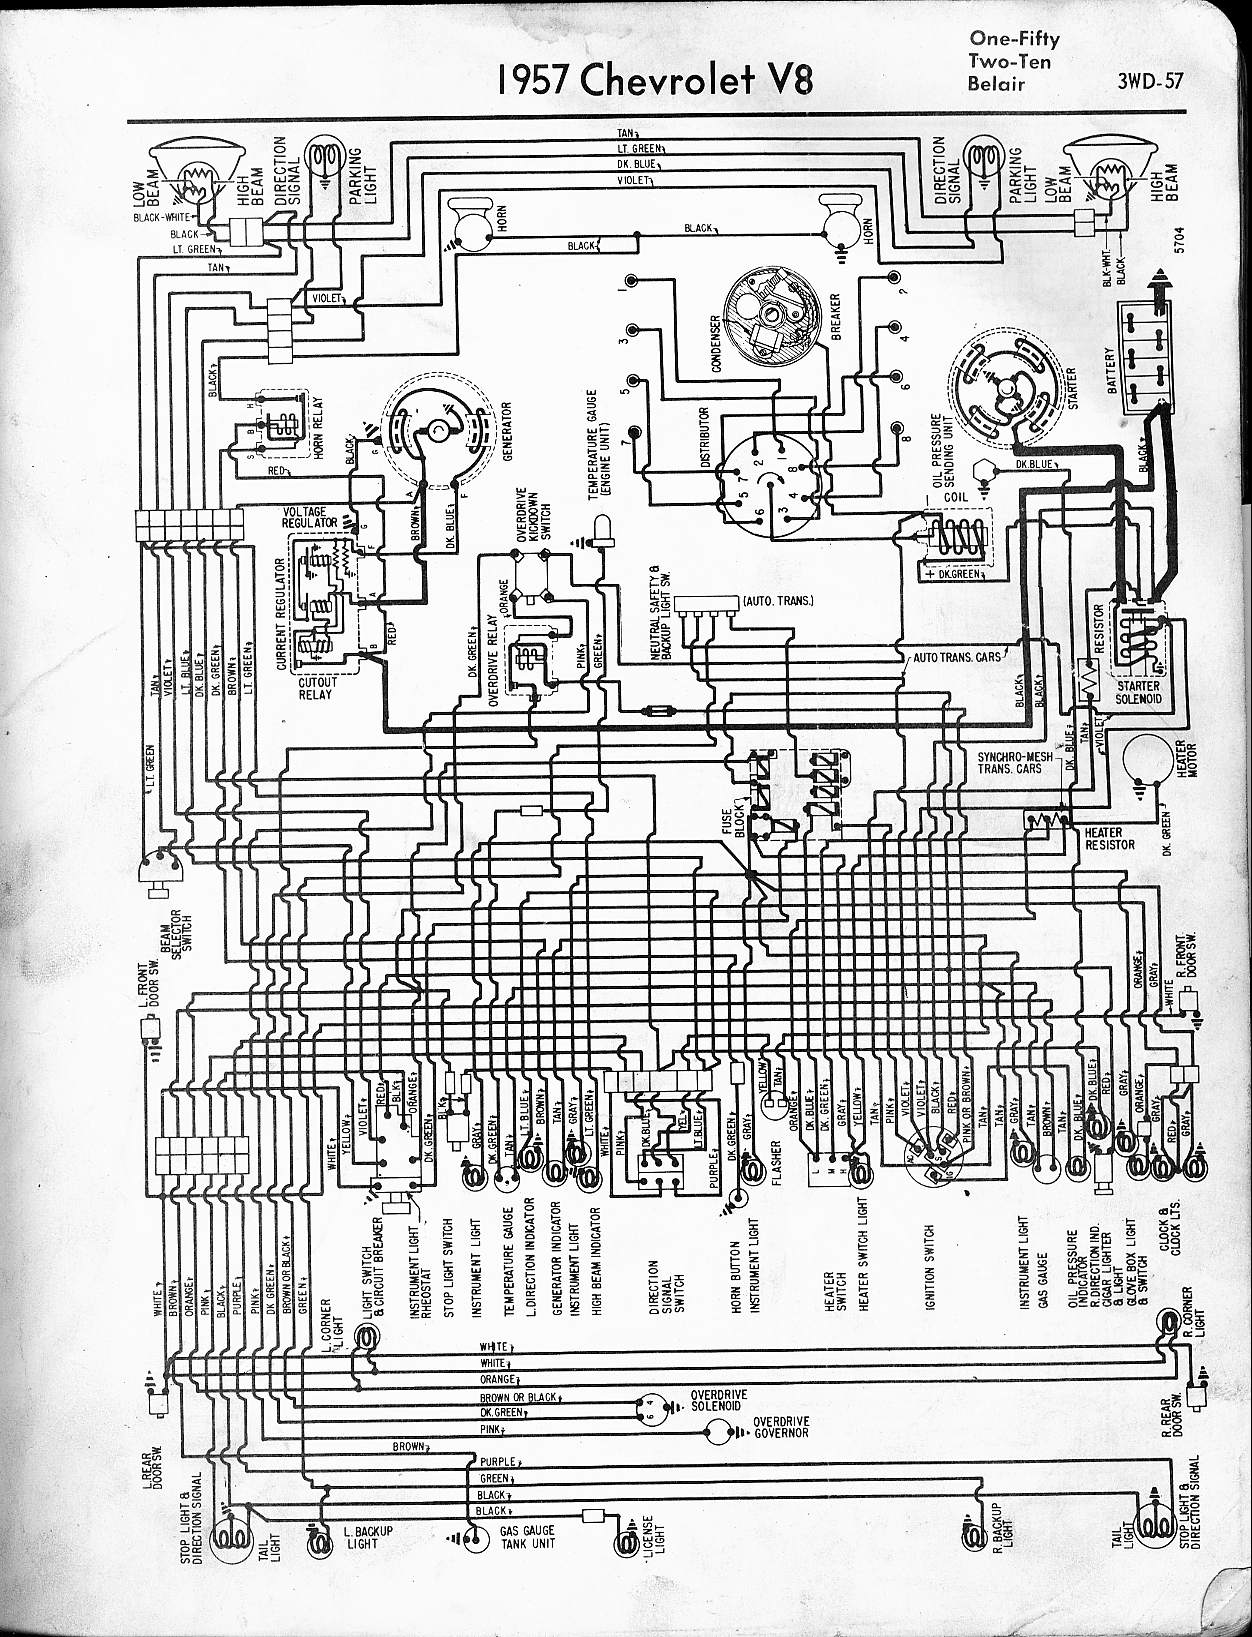 MWireChev57_3WD 057 57 65 chevy wiring diagrams 57 chevy wiring diagram at crackthecode.co